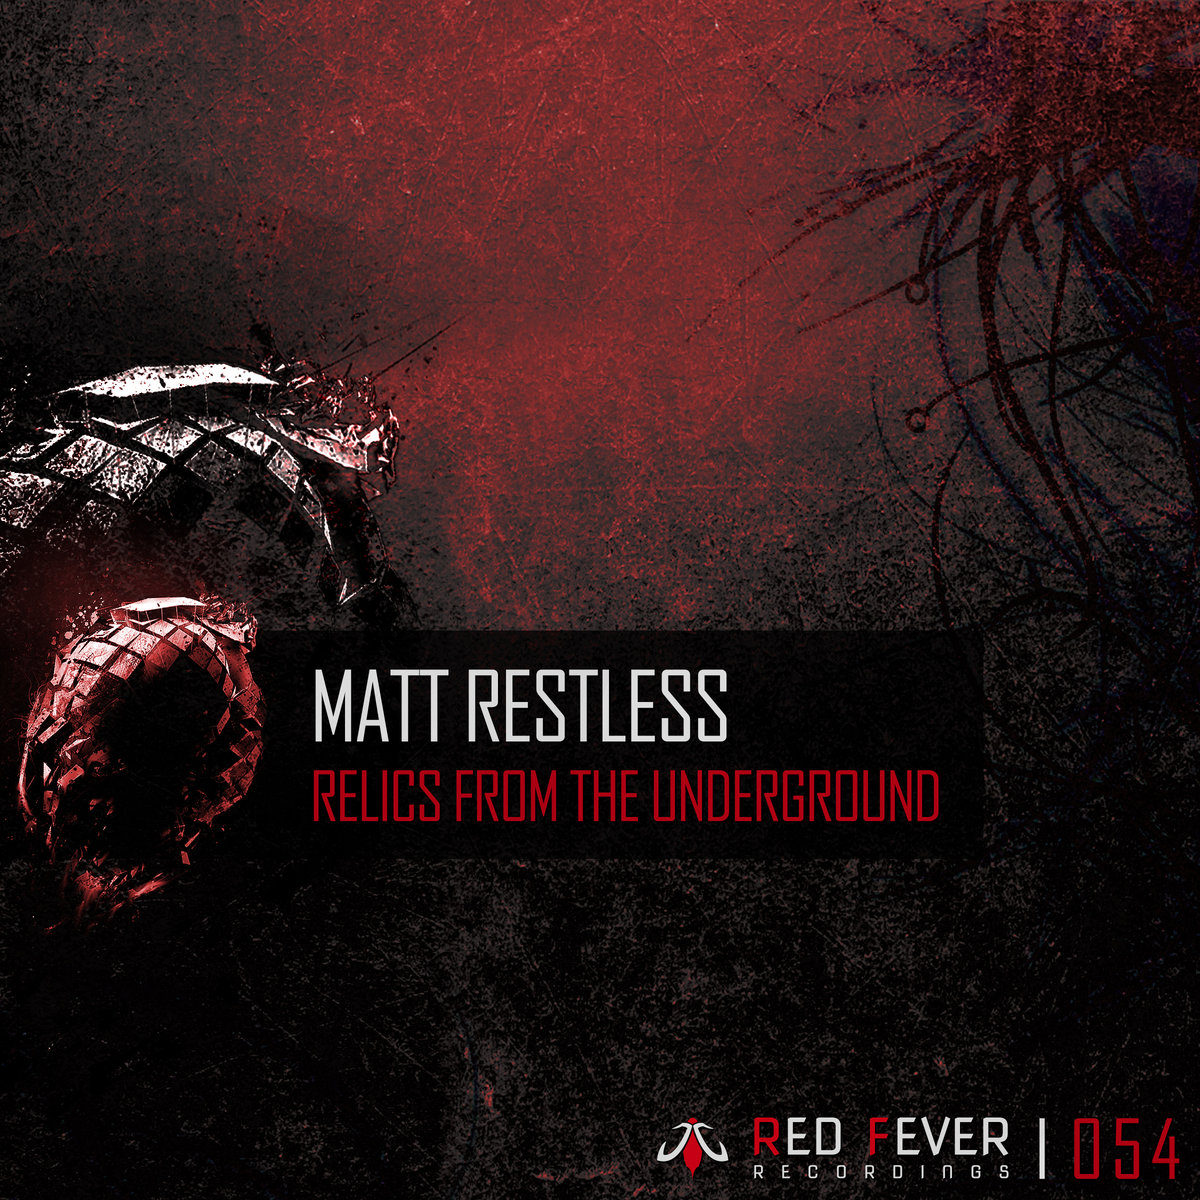 Matt Restless - Don't sleep @ 'Underground Relic' album (electronic, gabber)